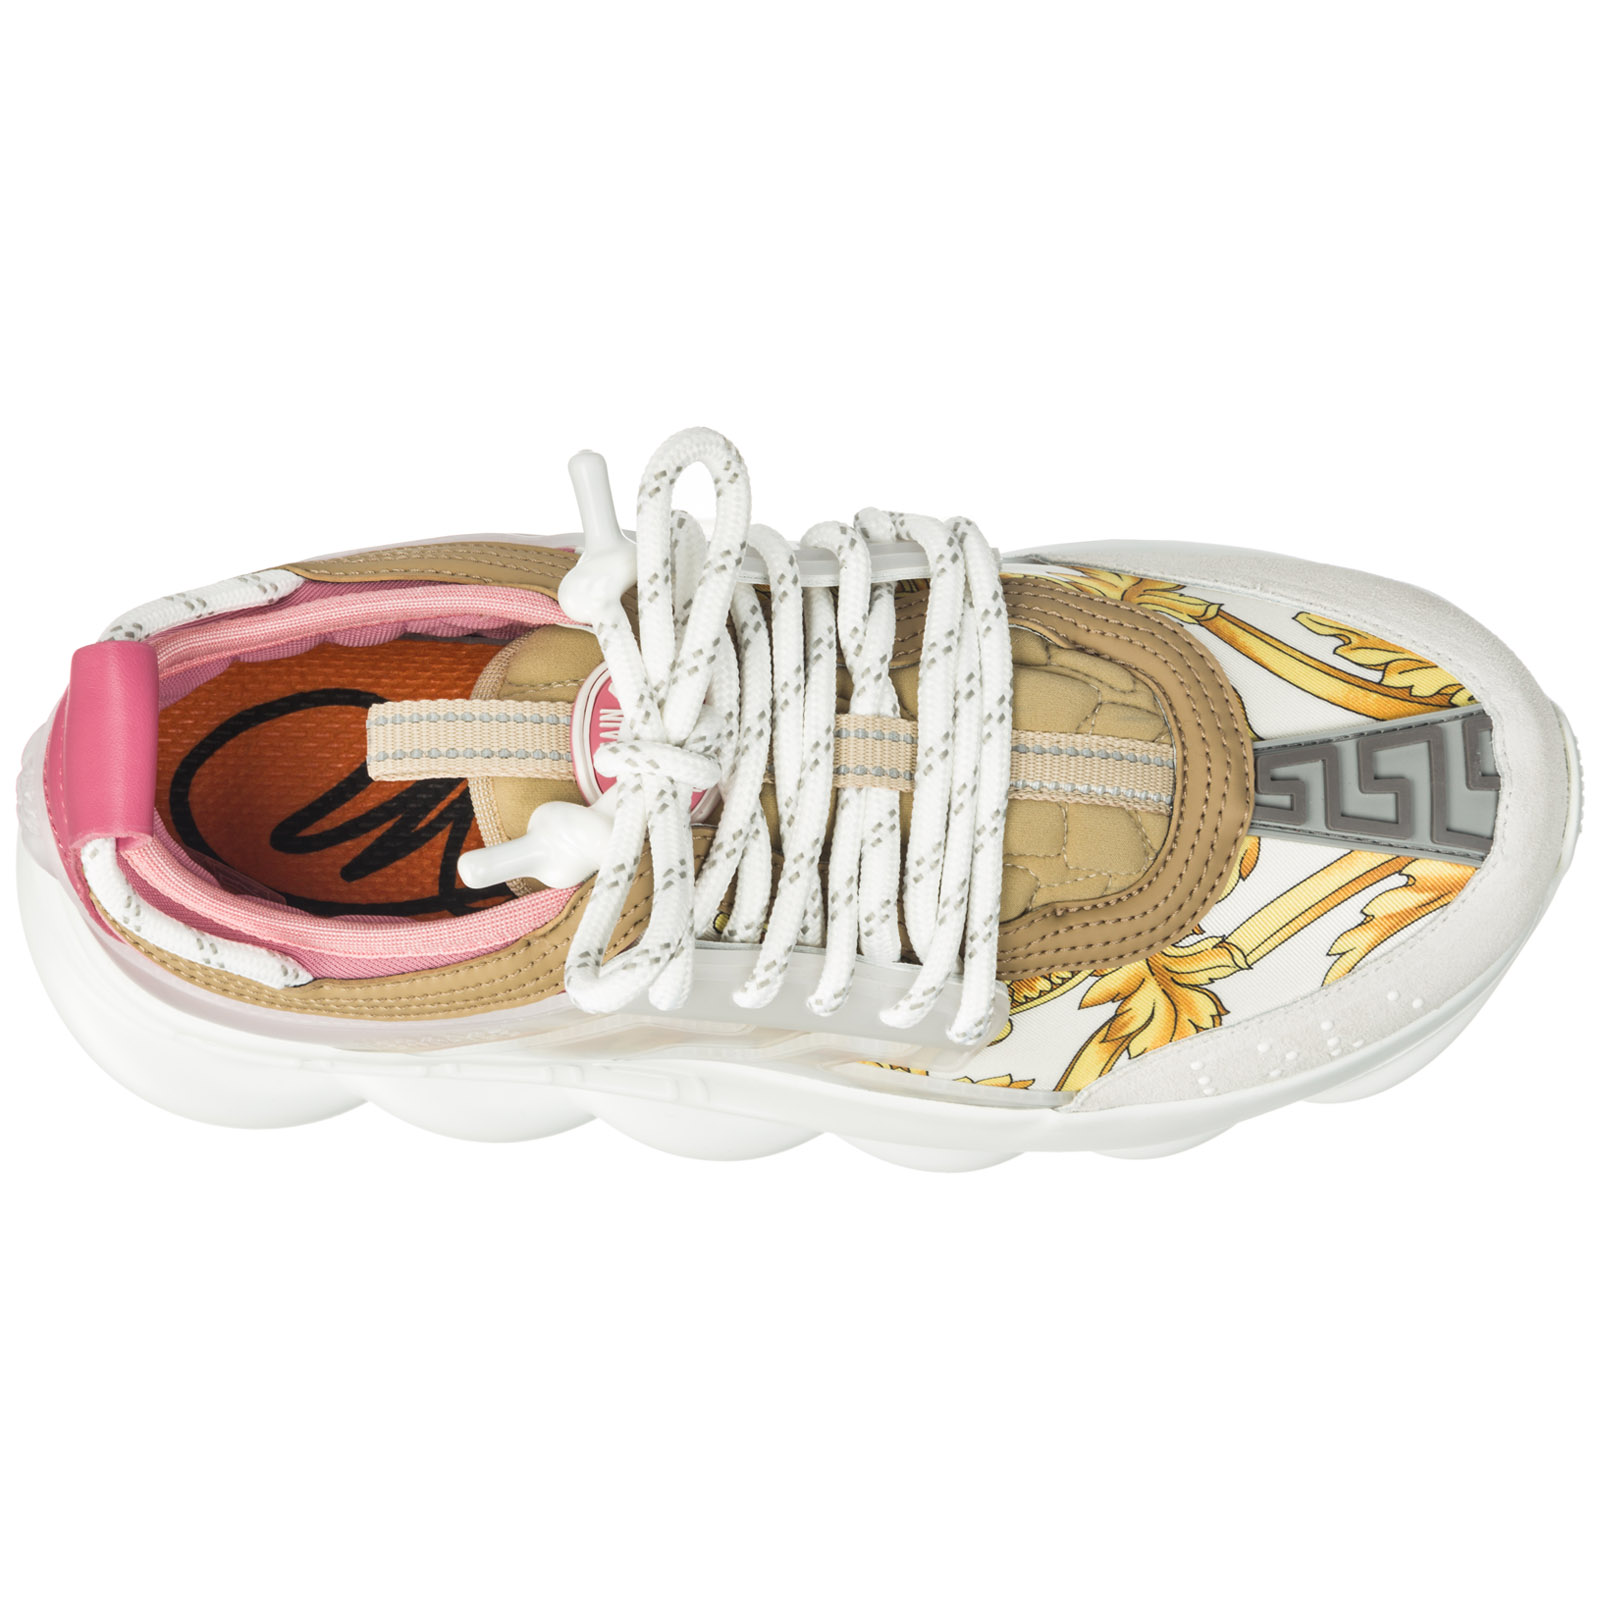 Women's shoes trainers sneakers  chain reaction